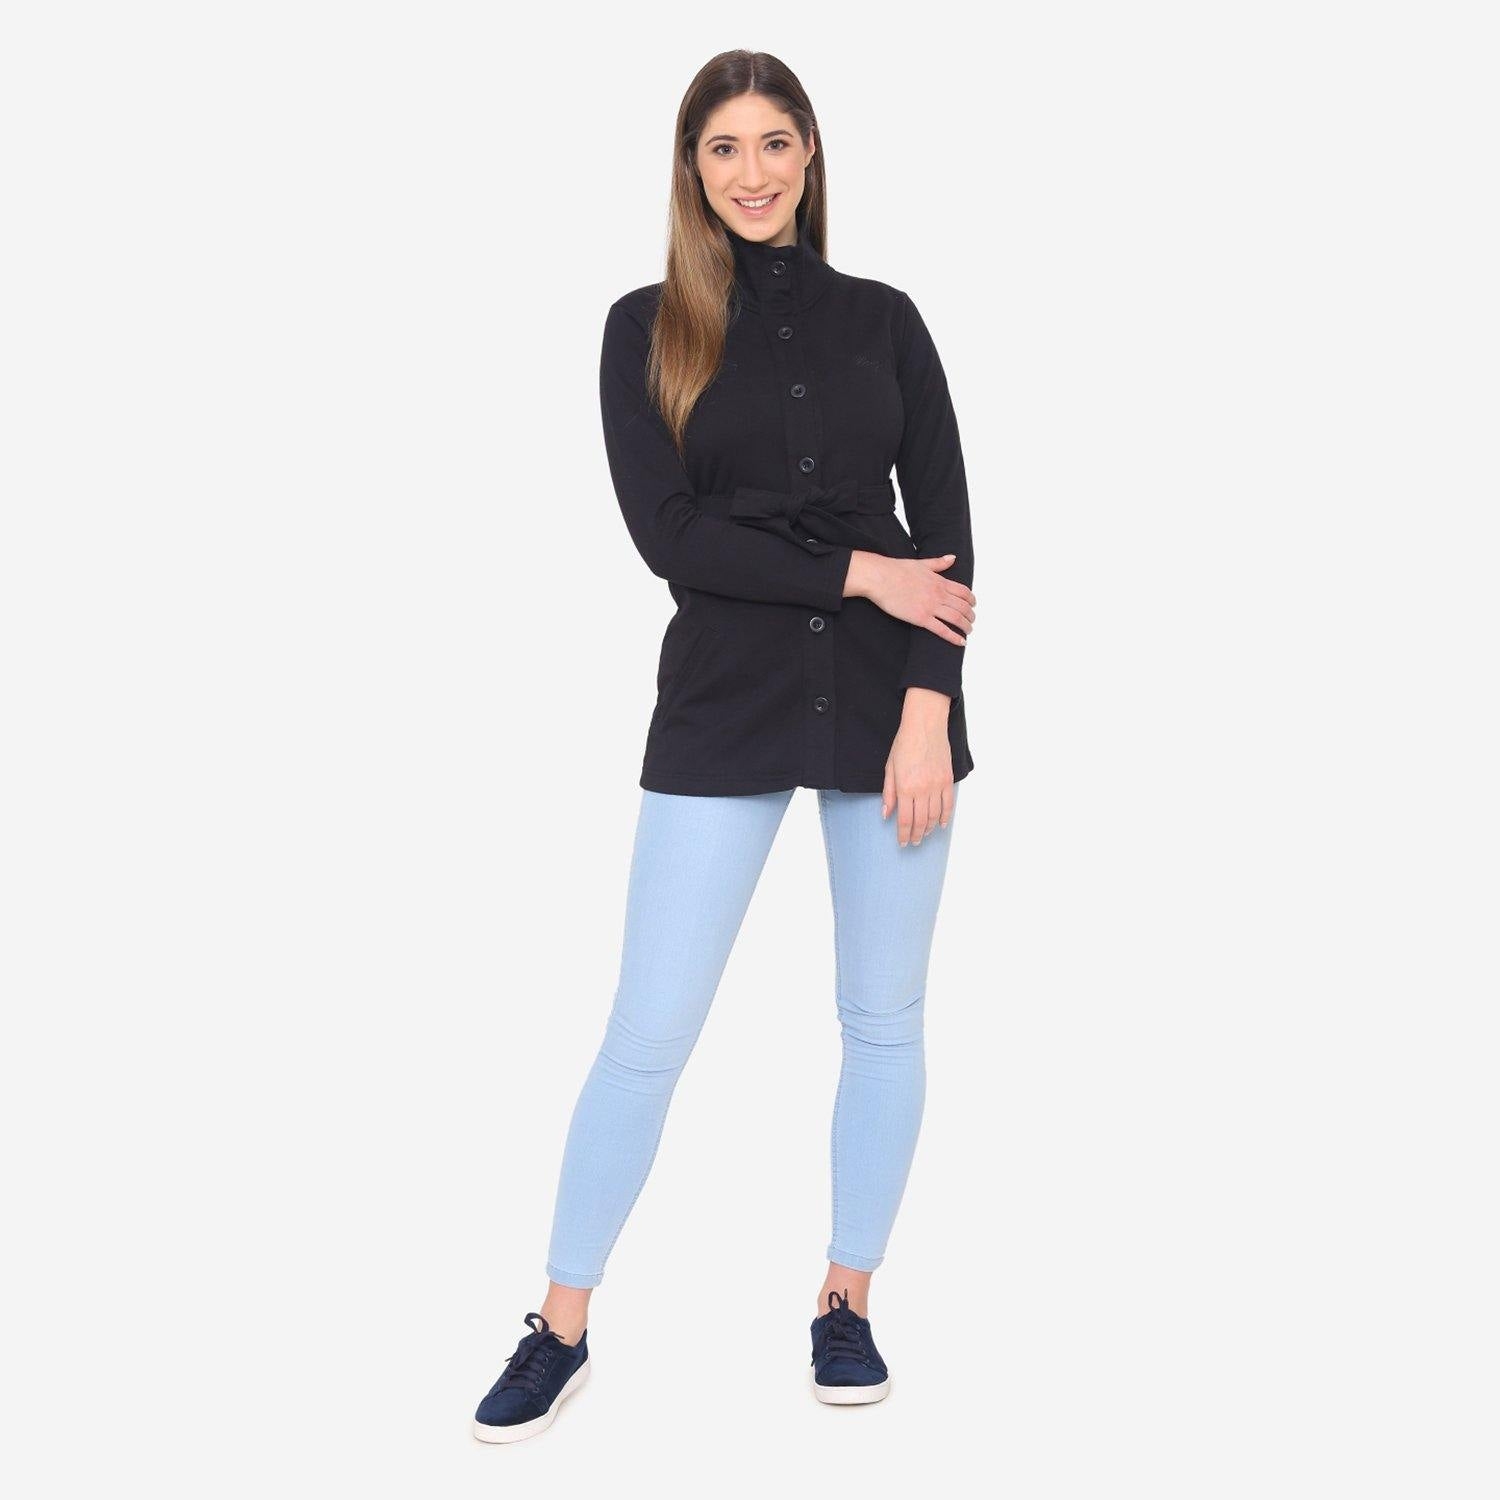 Women's Stylish & Comfy Winter Jacket - Black